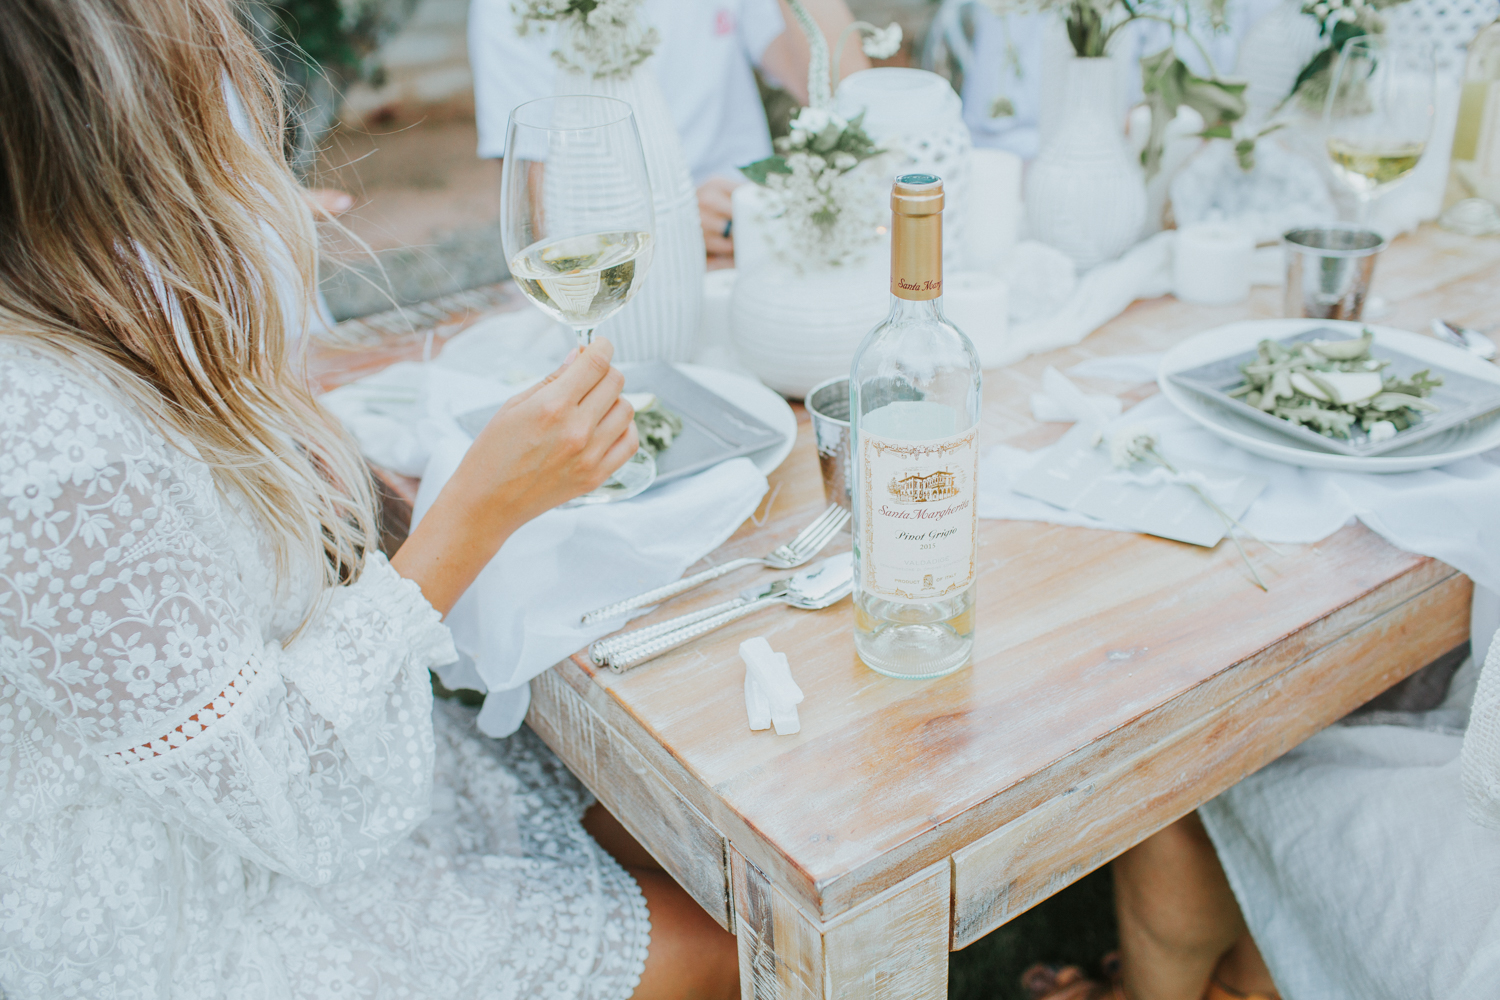 Outdoor dinner party with friends and wine   A Fabulous Fete